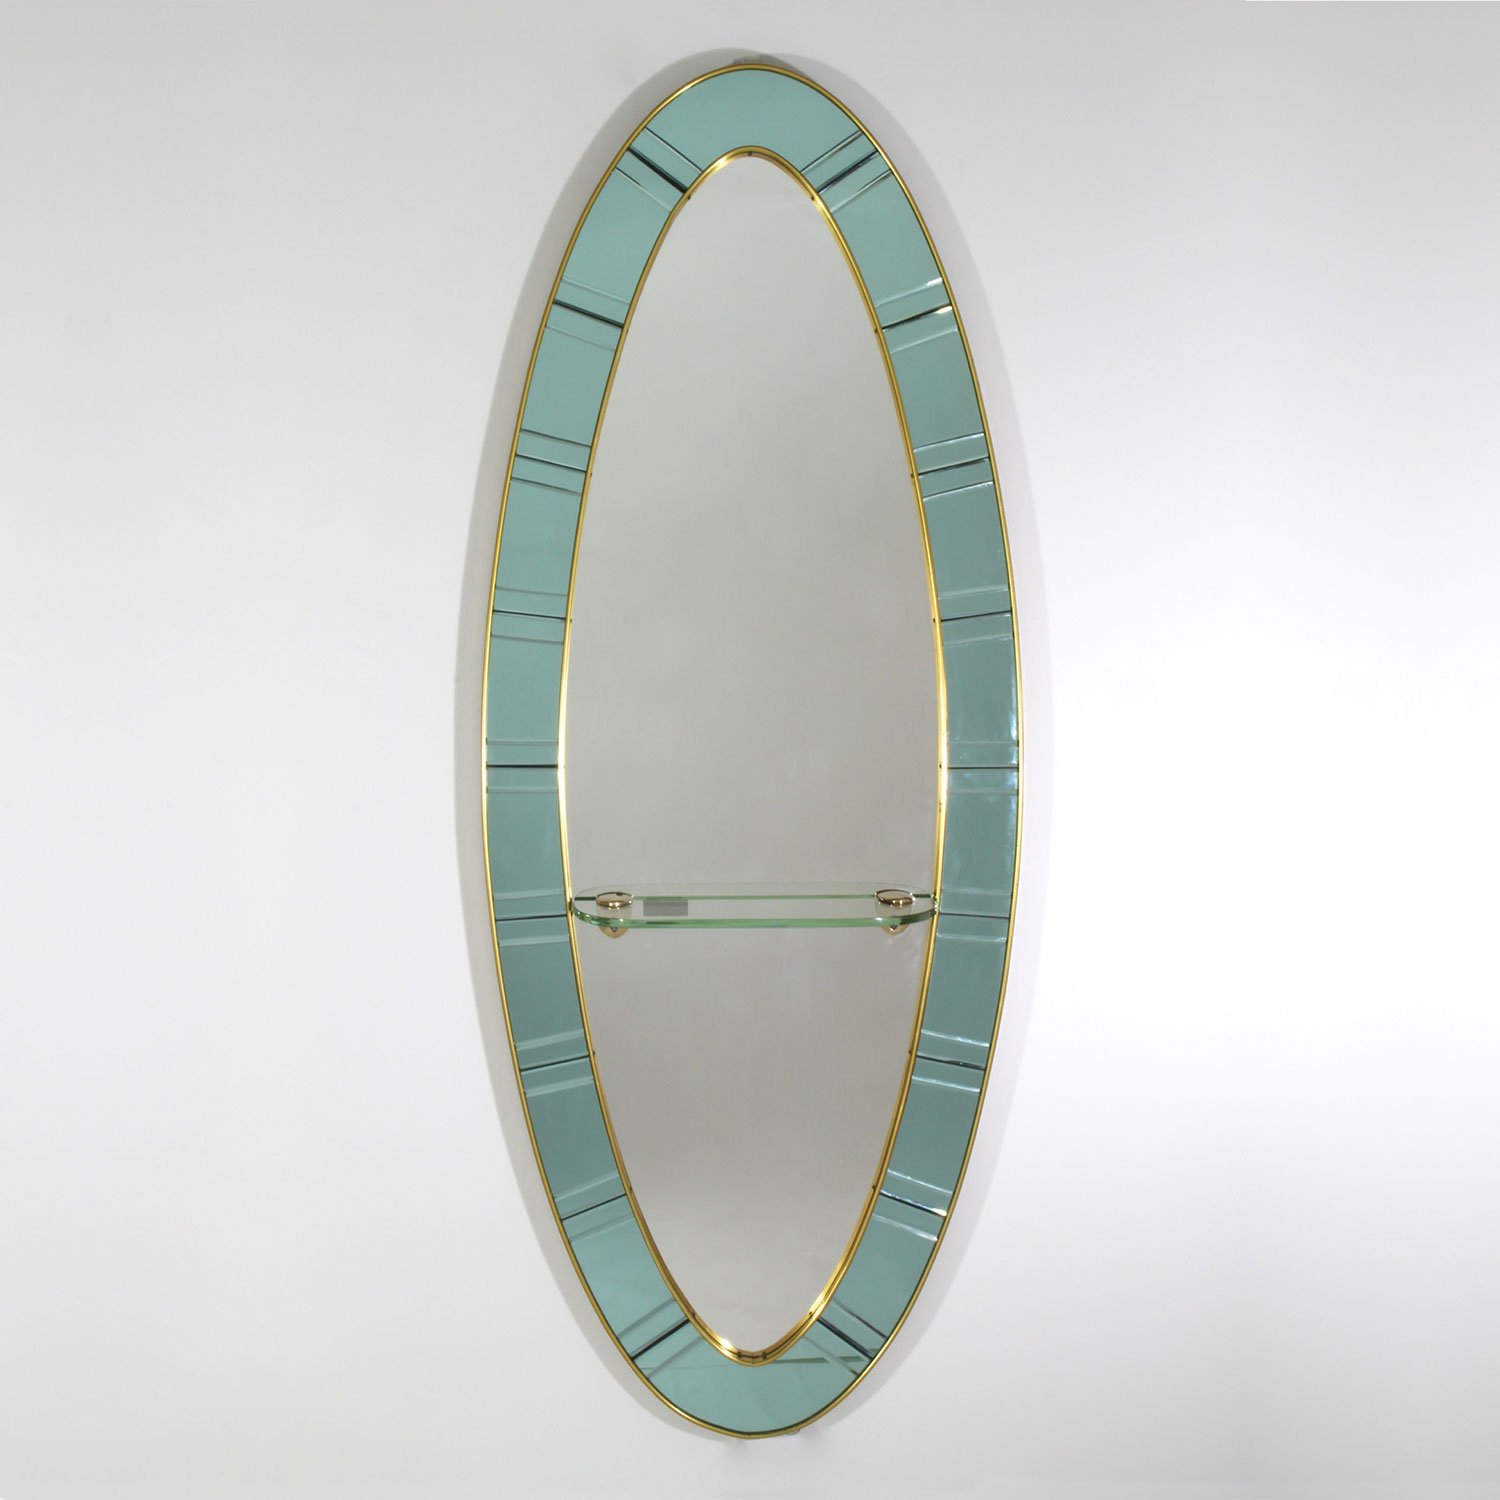 Cristal Art Oval mirror at design and furniture gallery Casati Gallery